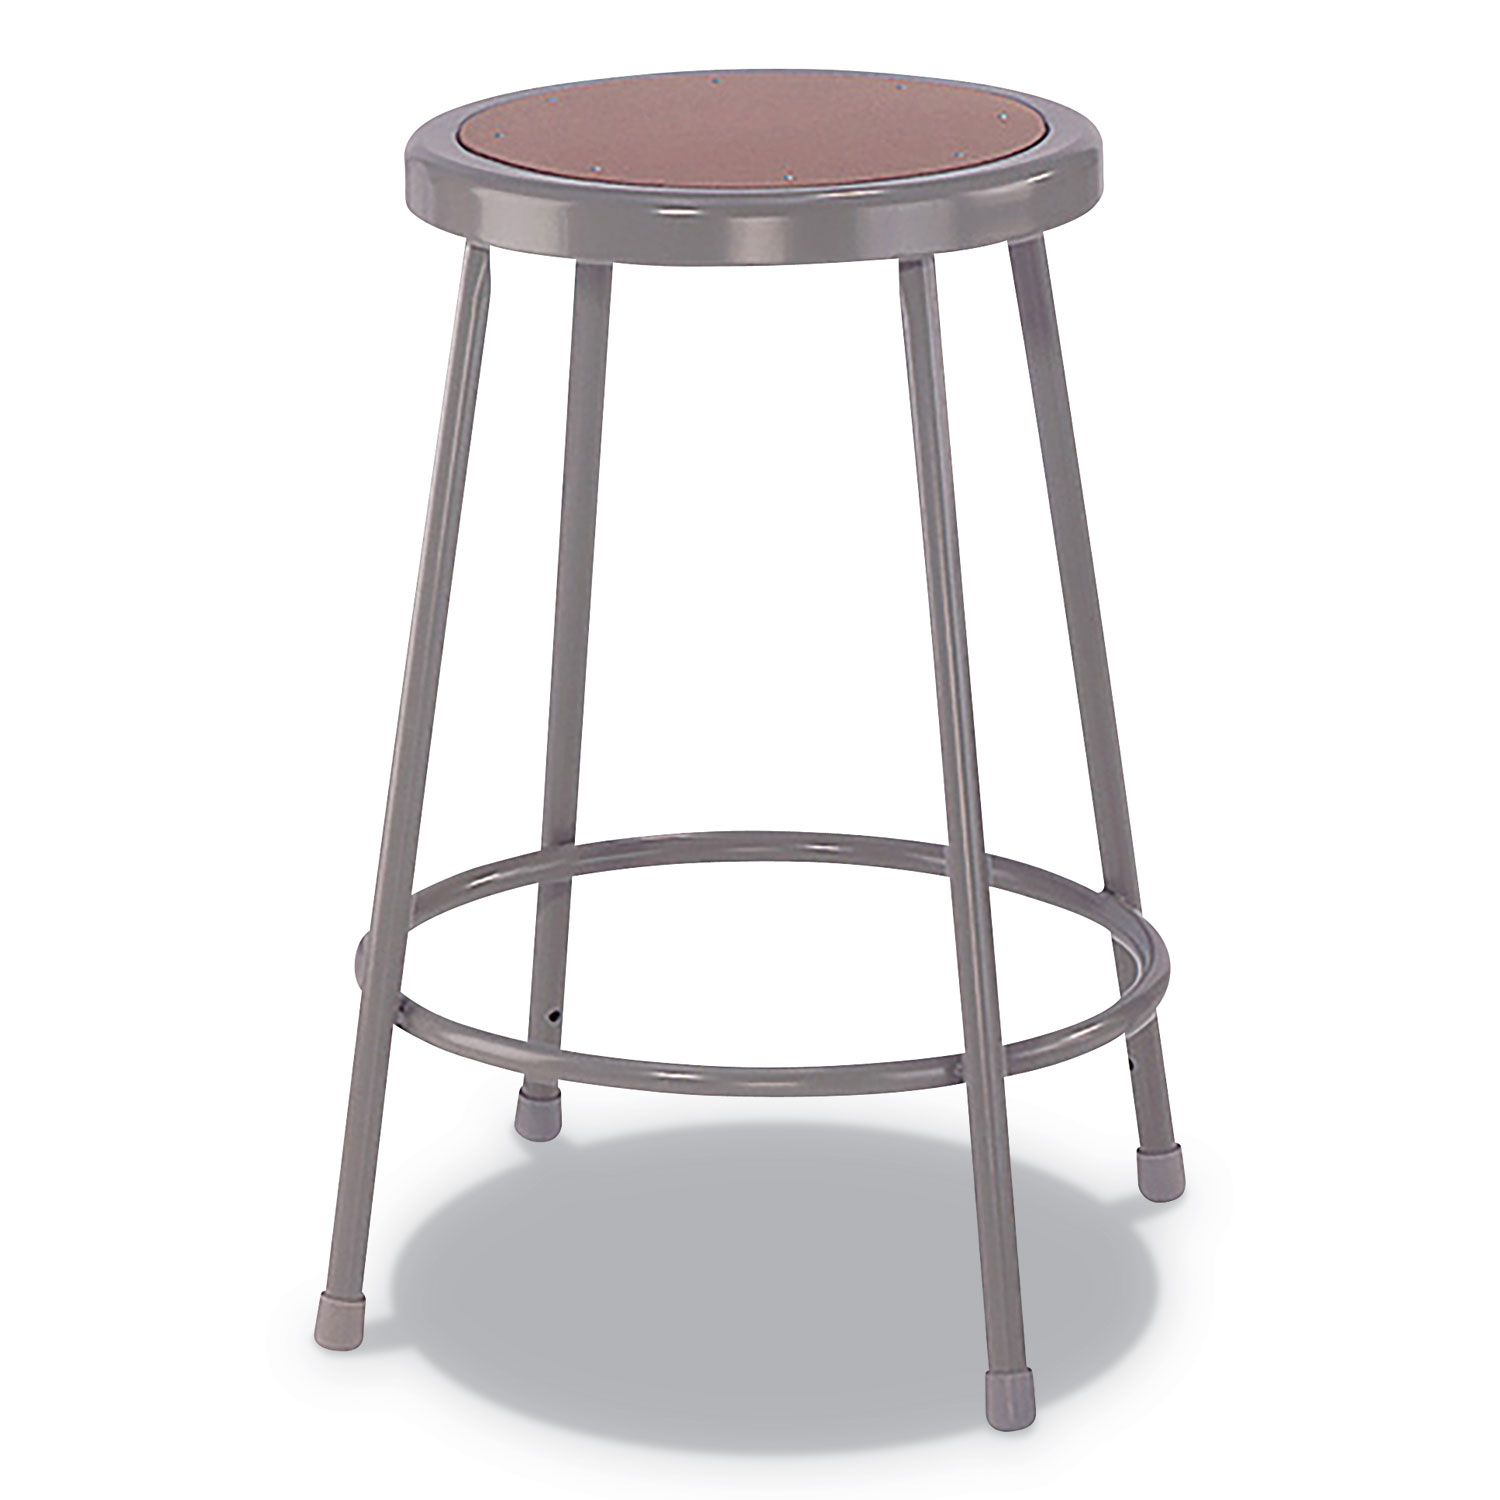 Tremendous Industrial Metal Shop Stool 24 Seat Height Supports Up To 300 Lbs Brown Seat Gray Back Gray Base Ocoug Best Dining Table And Chair Ideas Images Ocougorg